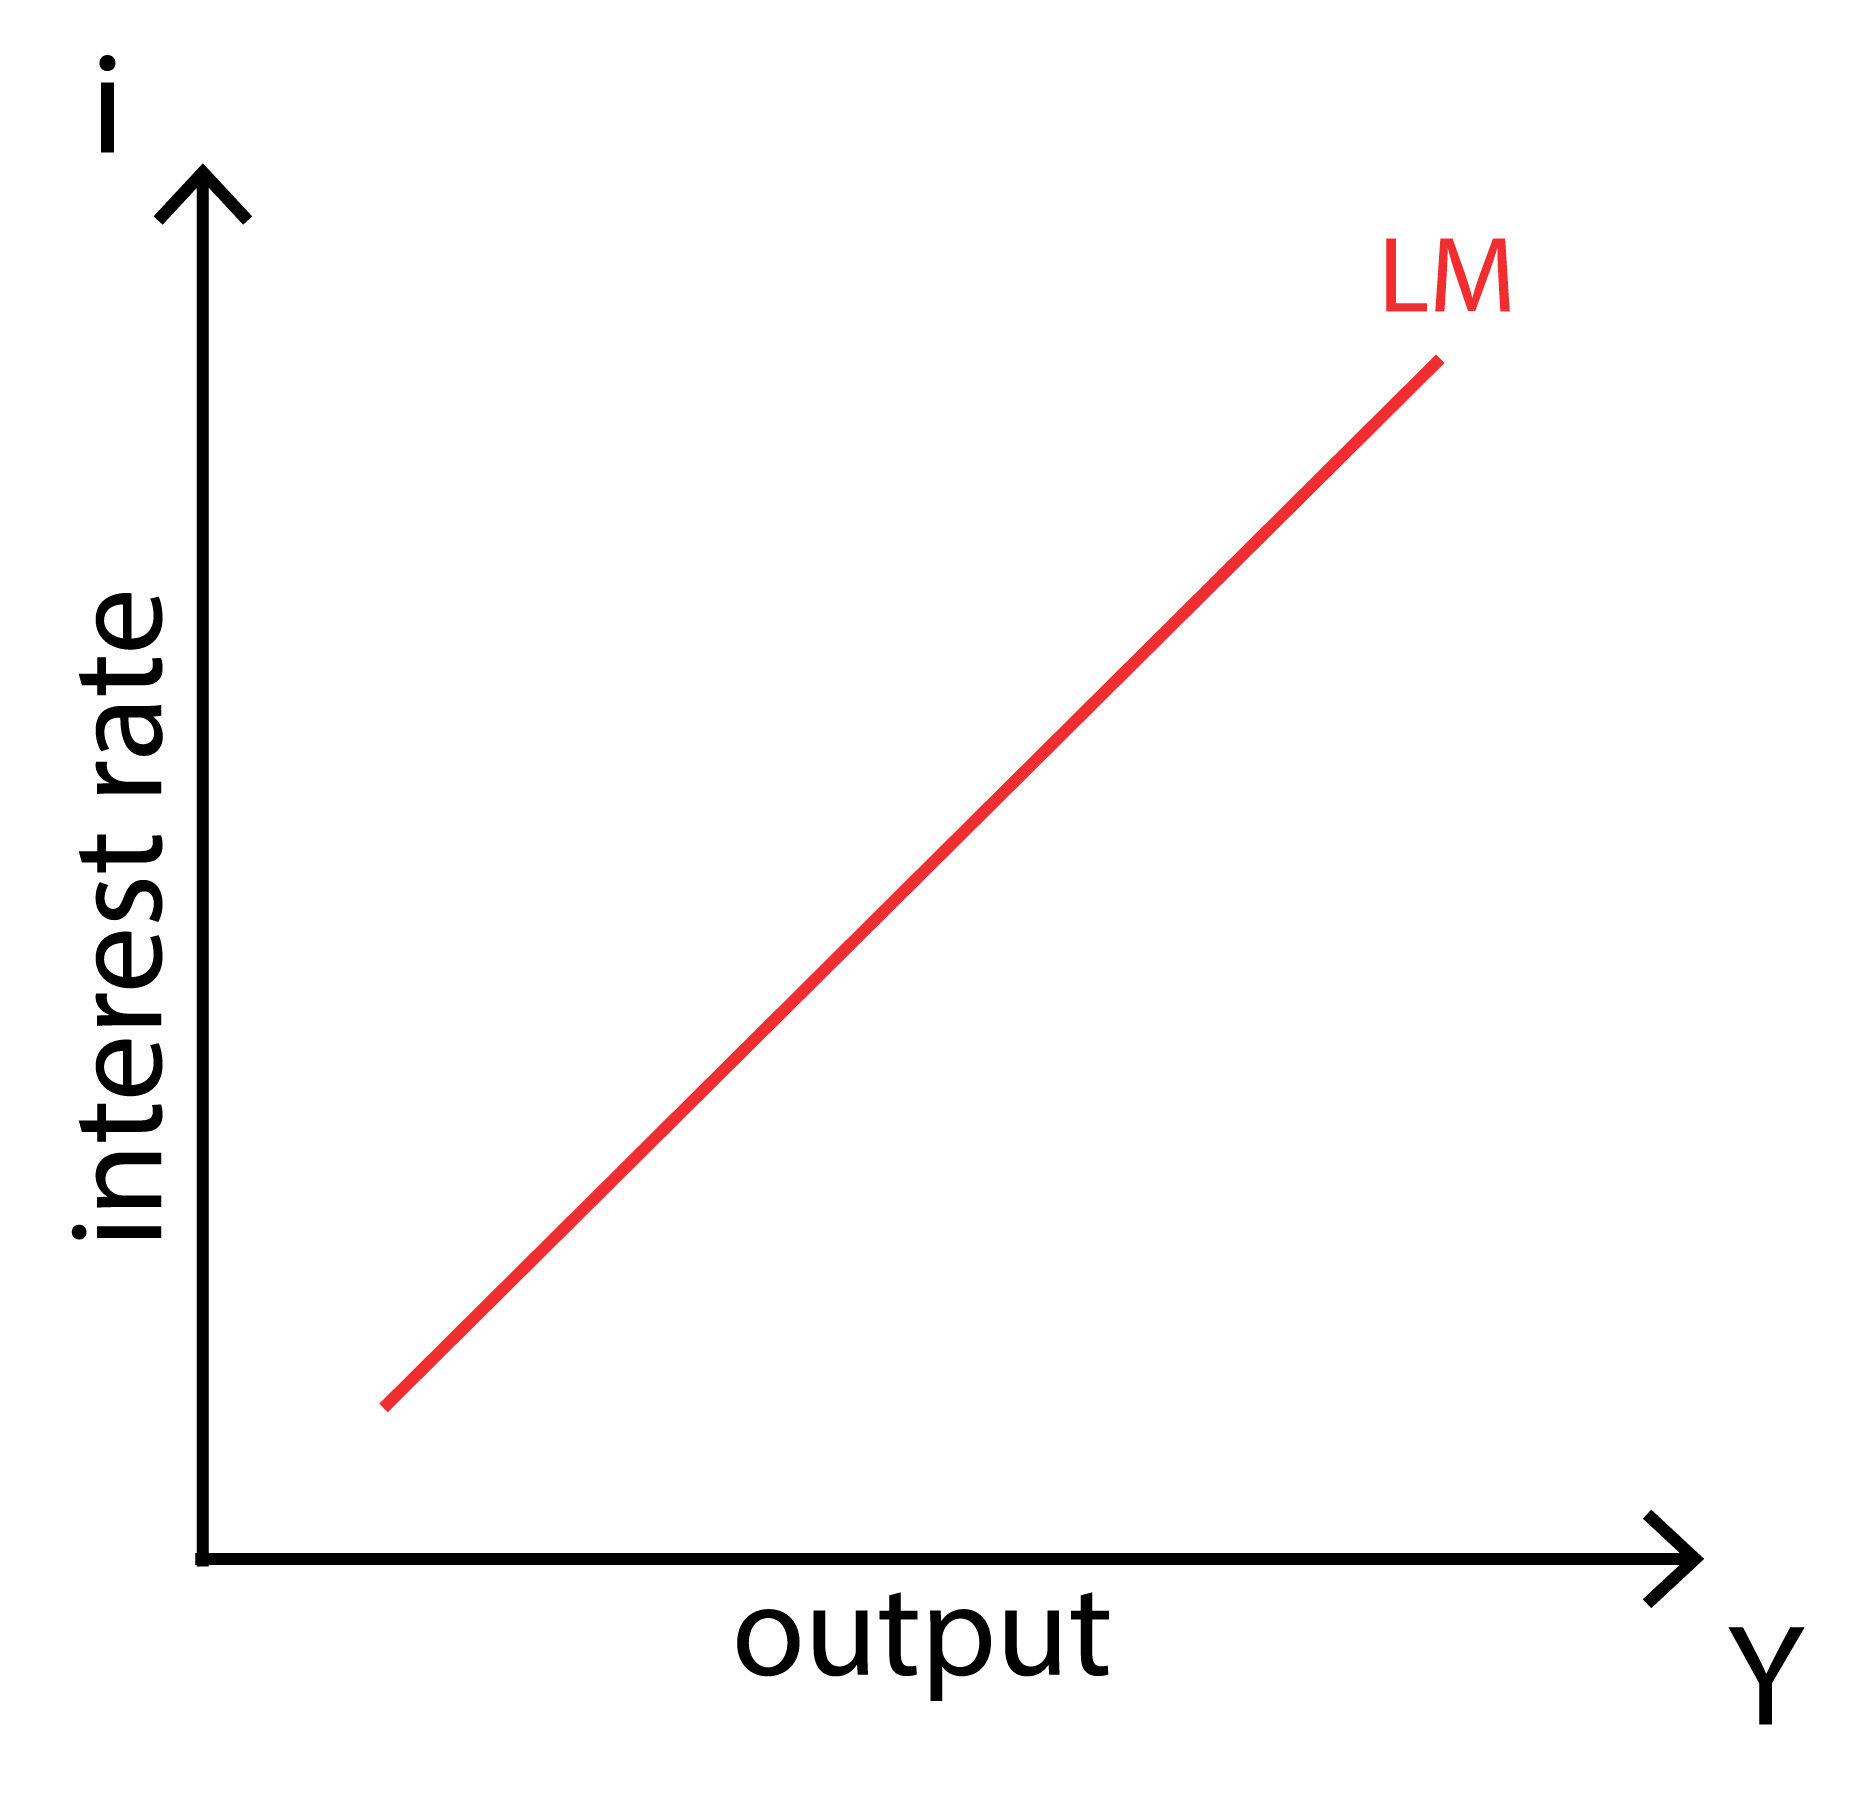 IS-LM-BP model - LM curve